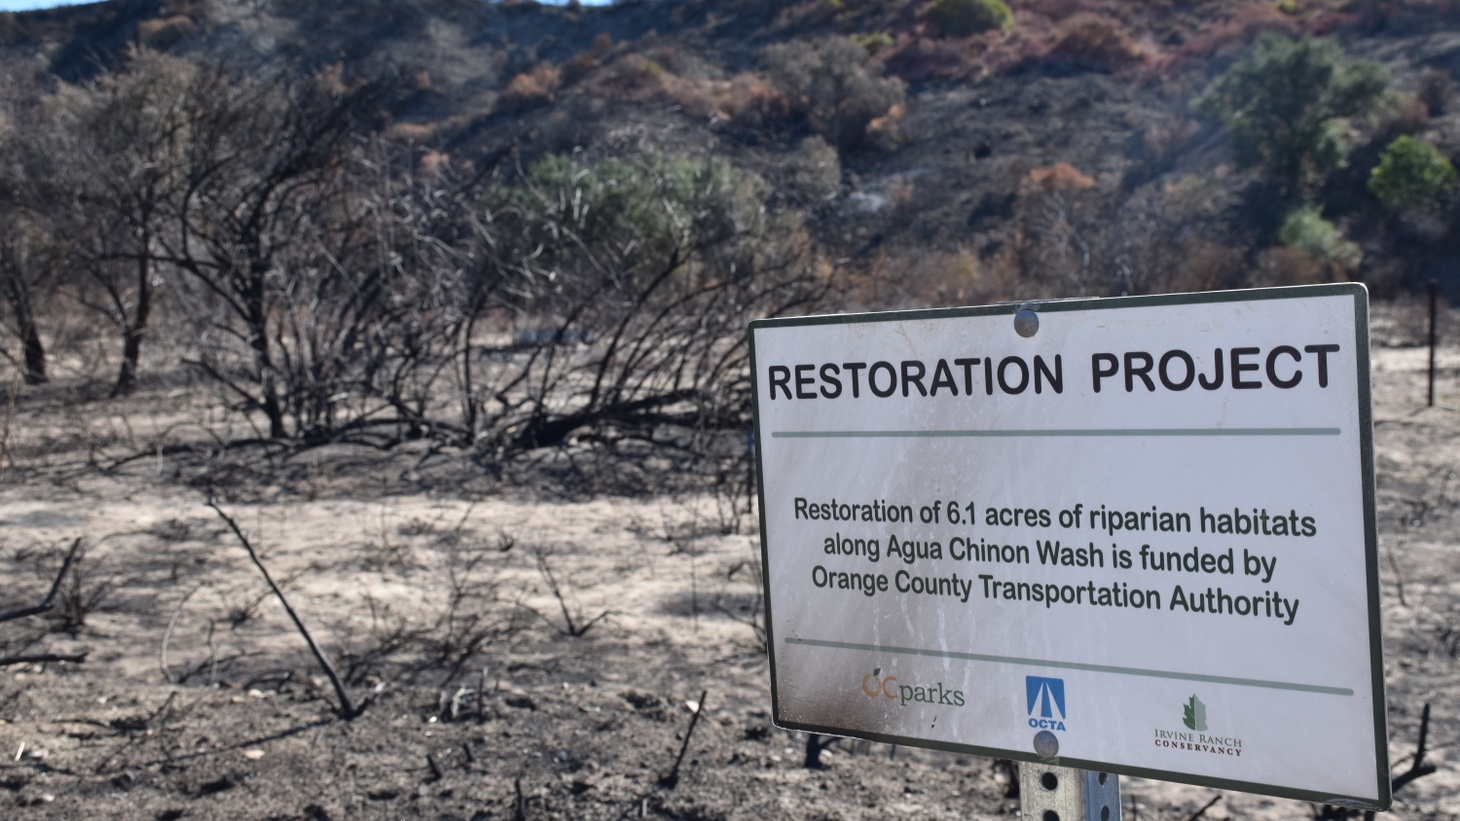 The Silverado Fire in October burned through Orange County's Agua Chinon Canyon, a riparian area that the Irvine Ranch Conservancy had just finished restoring.